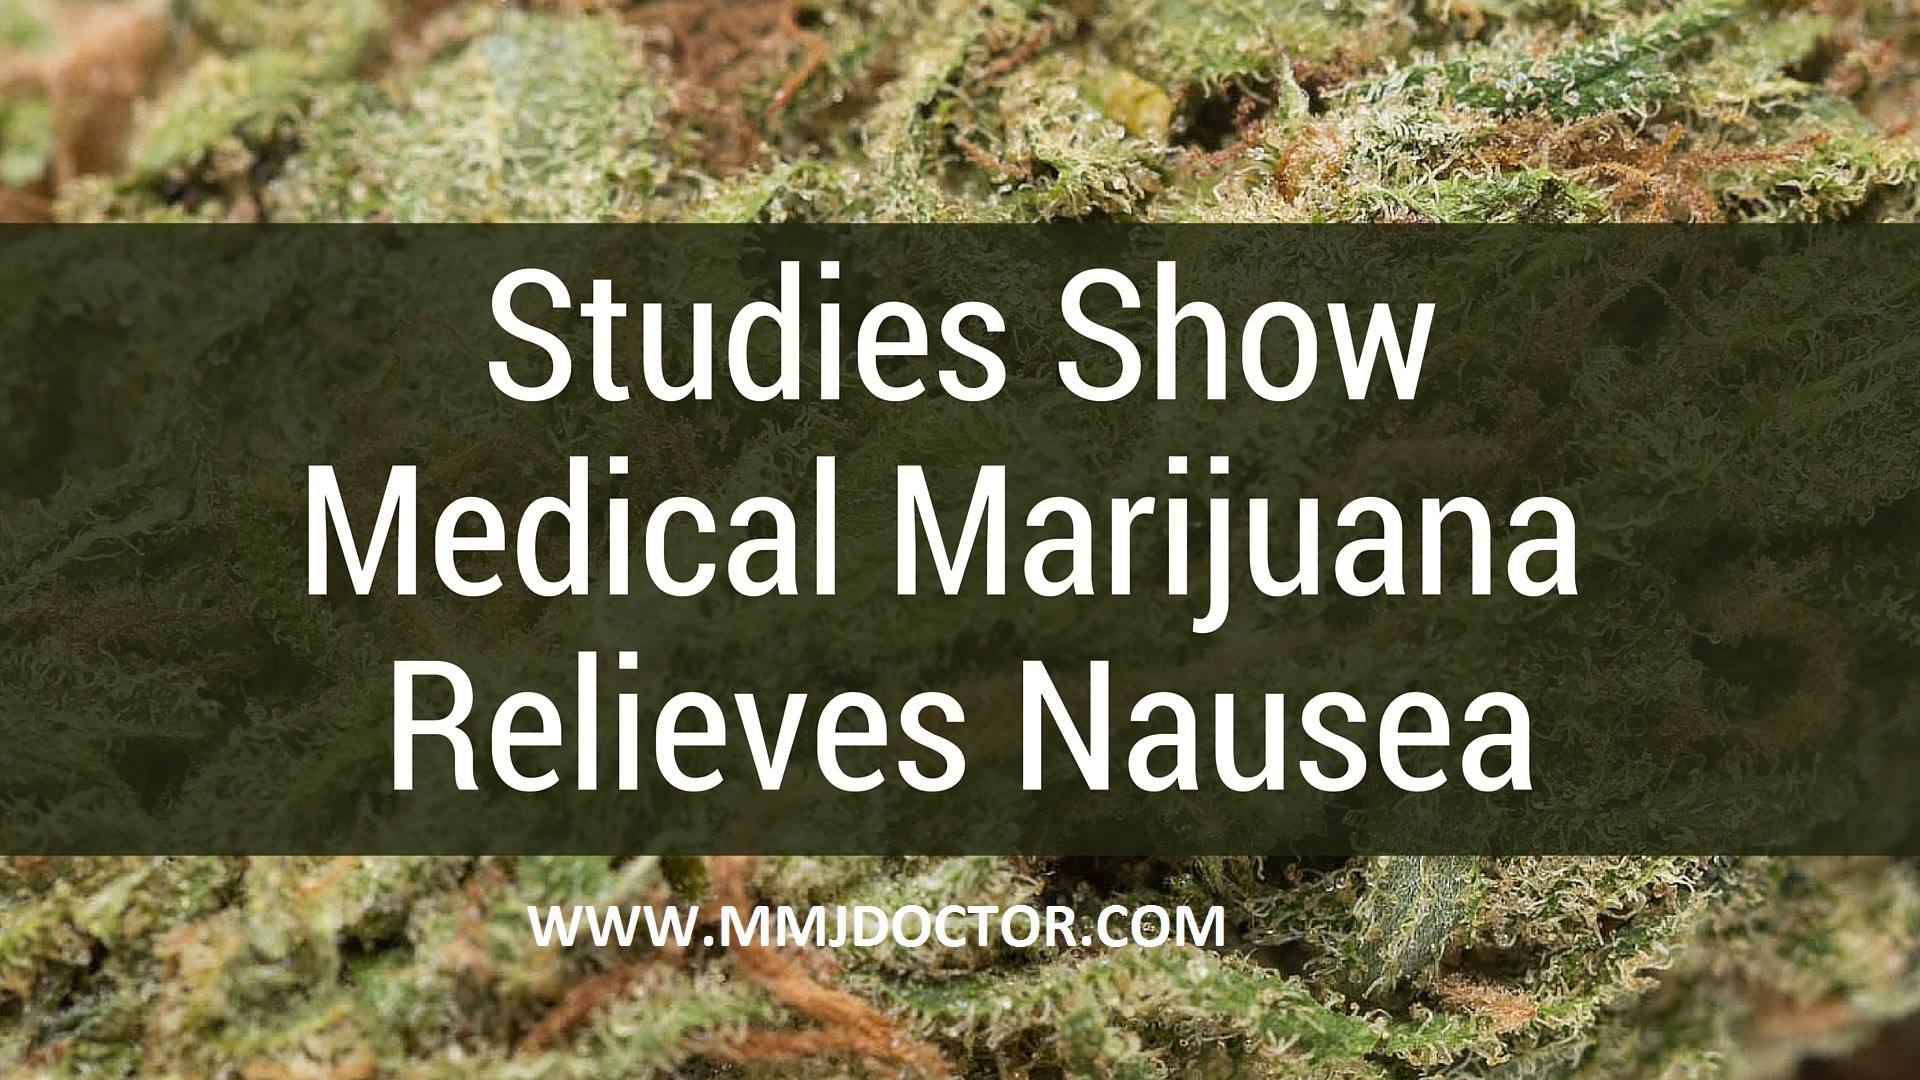 Nausea-and-medical-marijuana-mmjdoctor